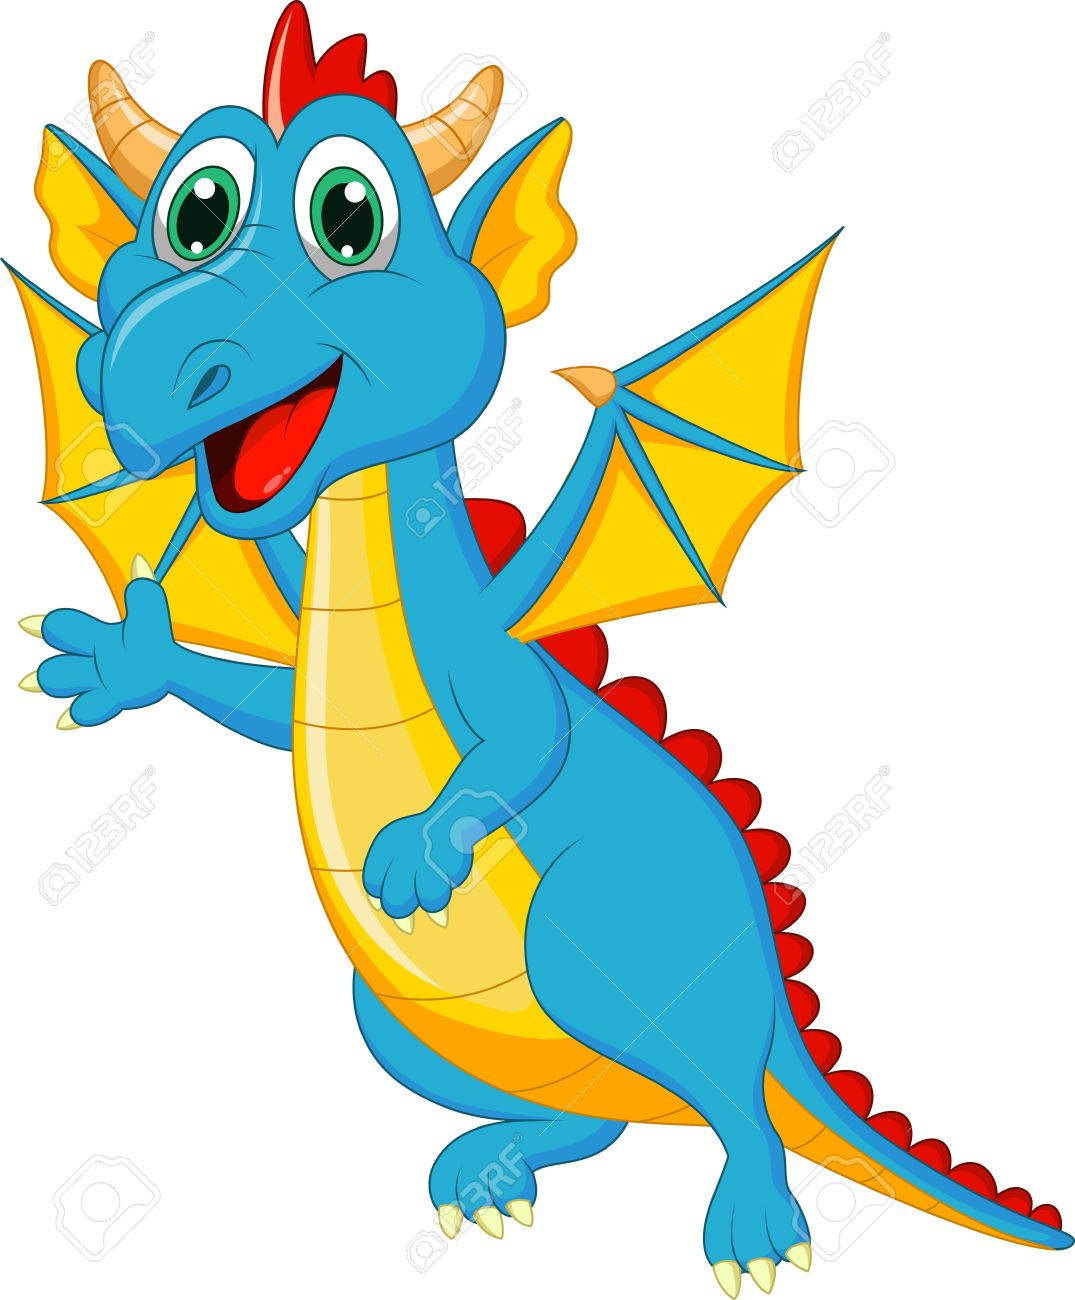 1075x1300 Cute Dragon Cartoon Royalty Free Cliparts, Vectors, And Stock